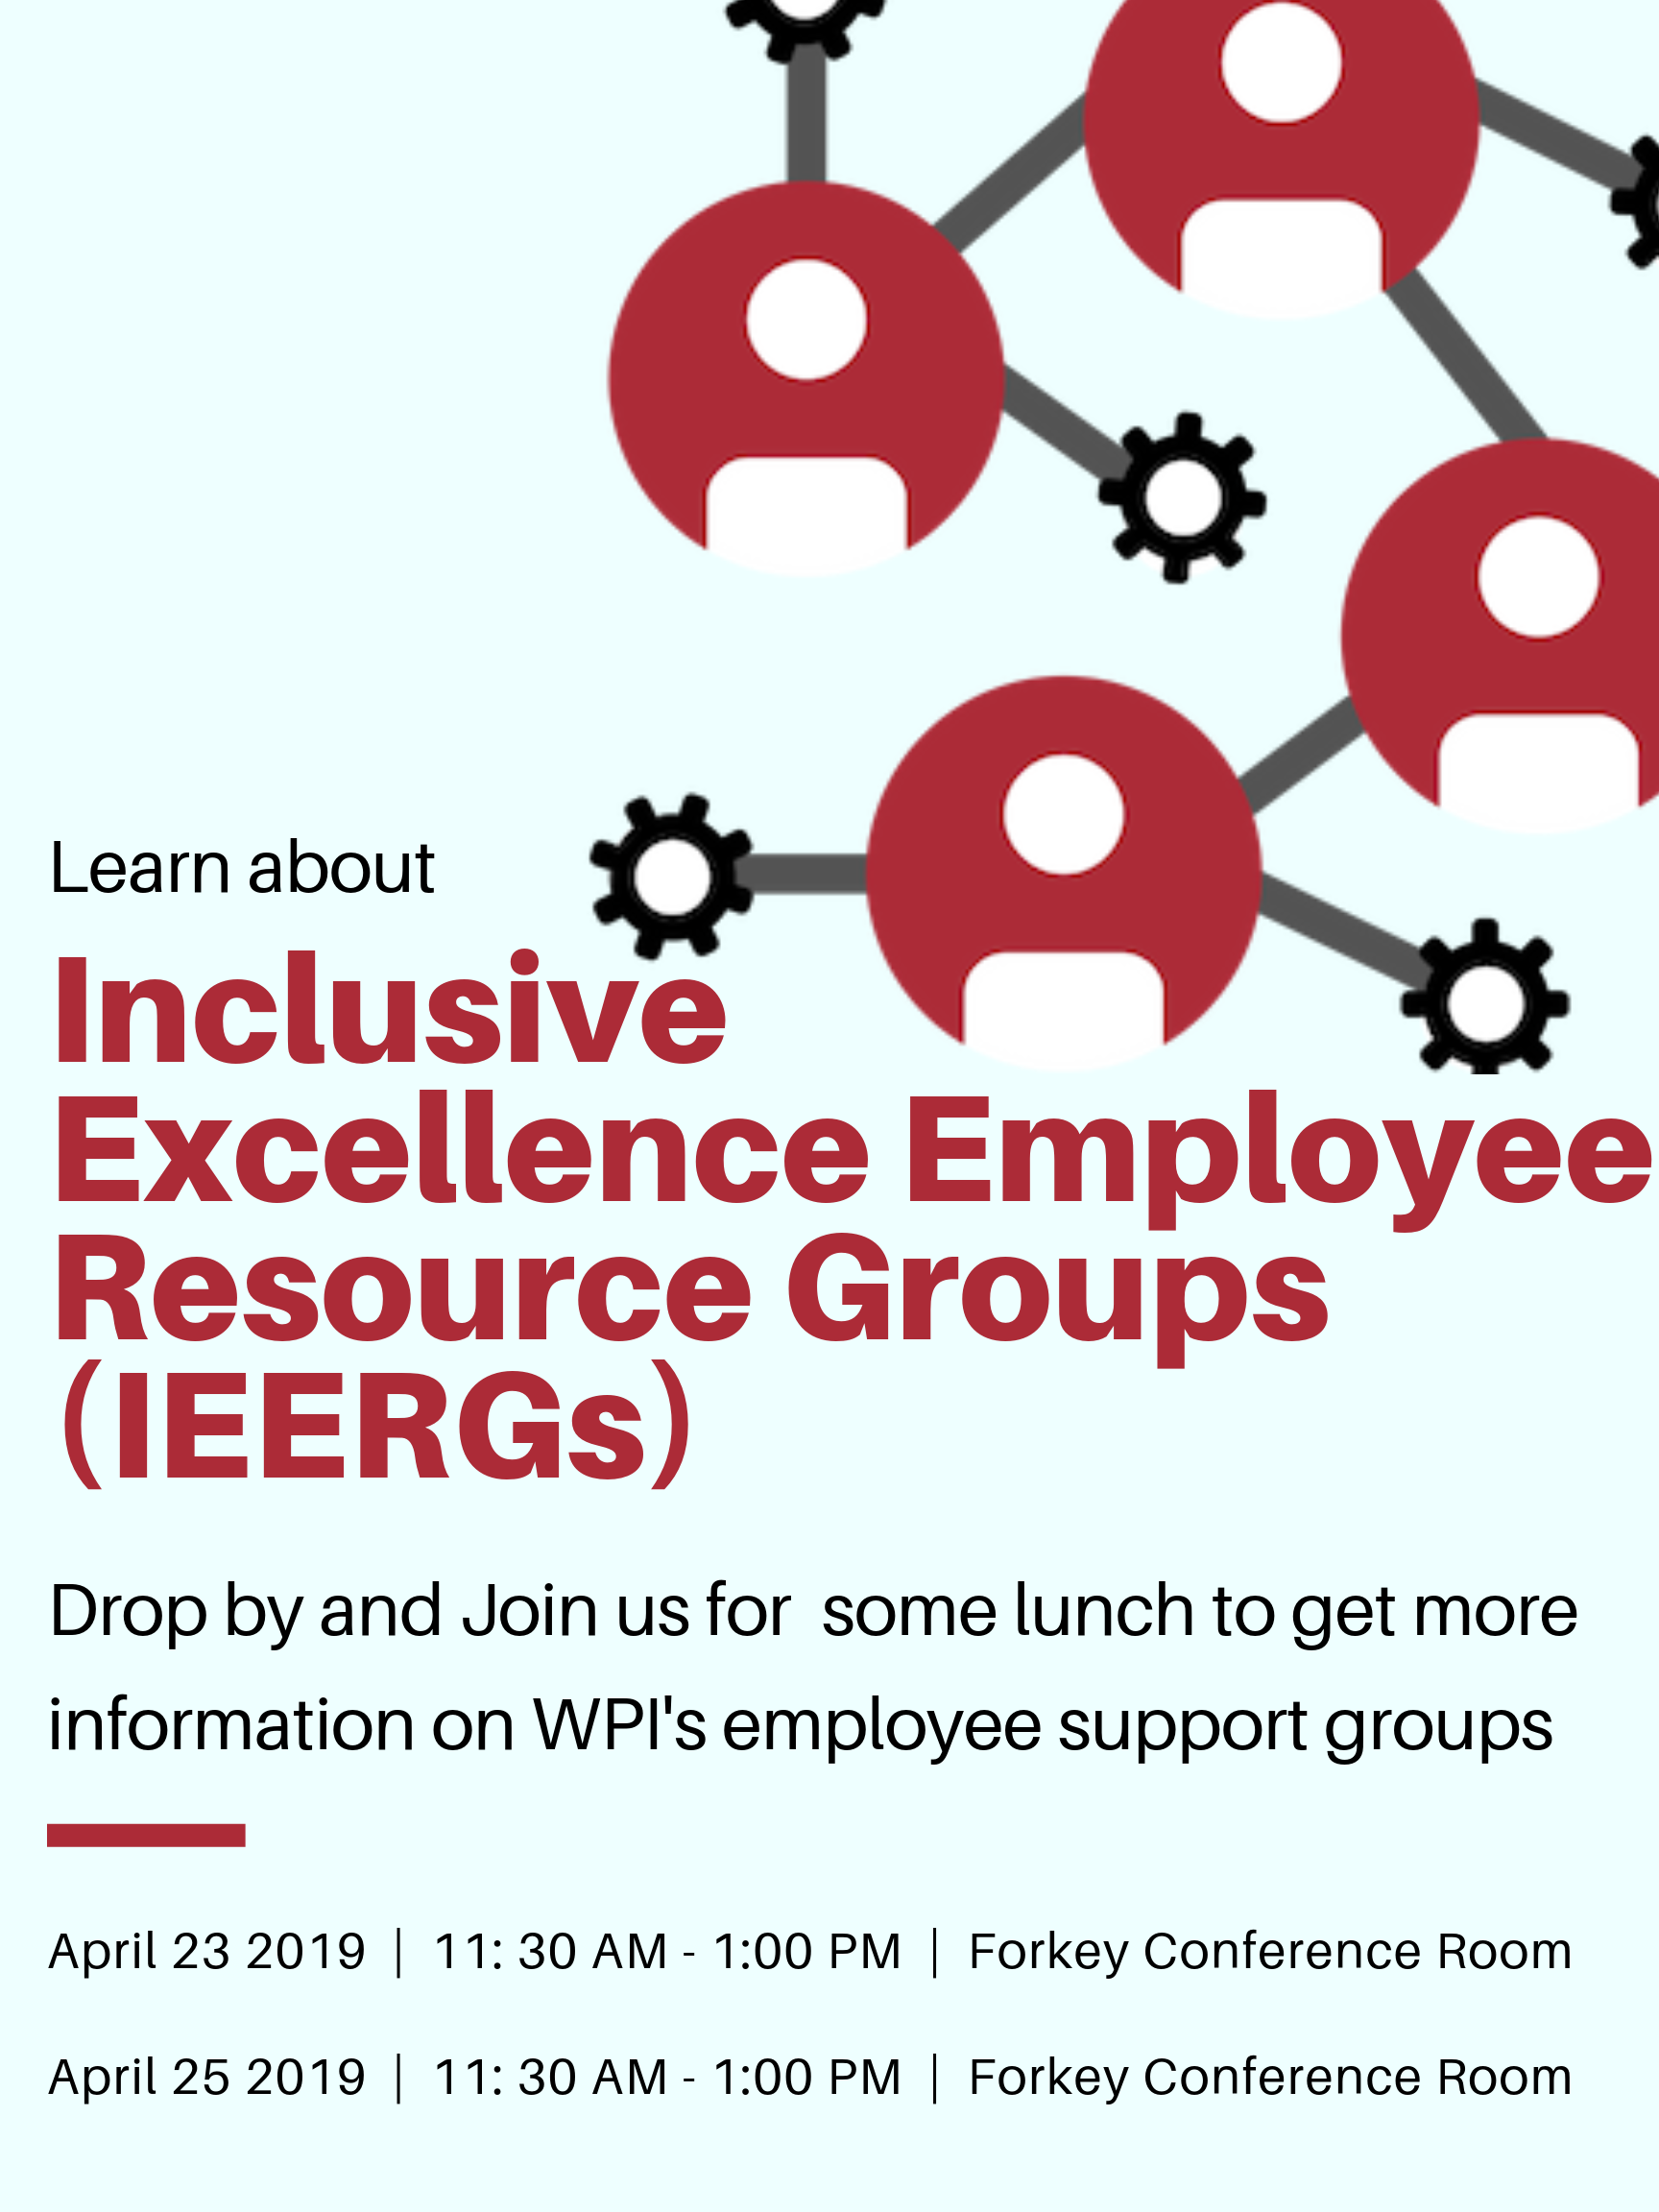 Inclusive Excellence Employee Resource Groups